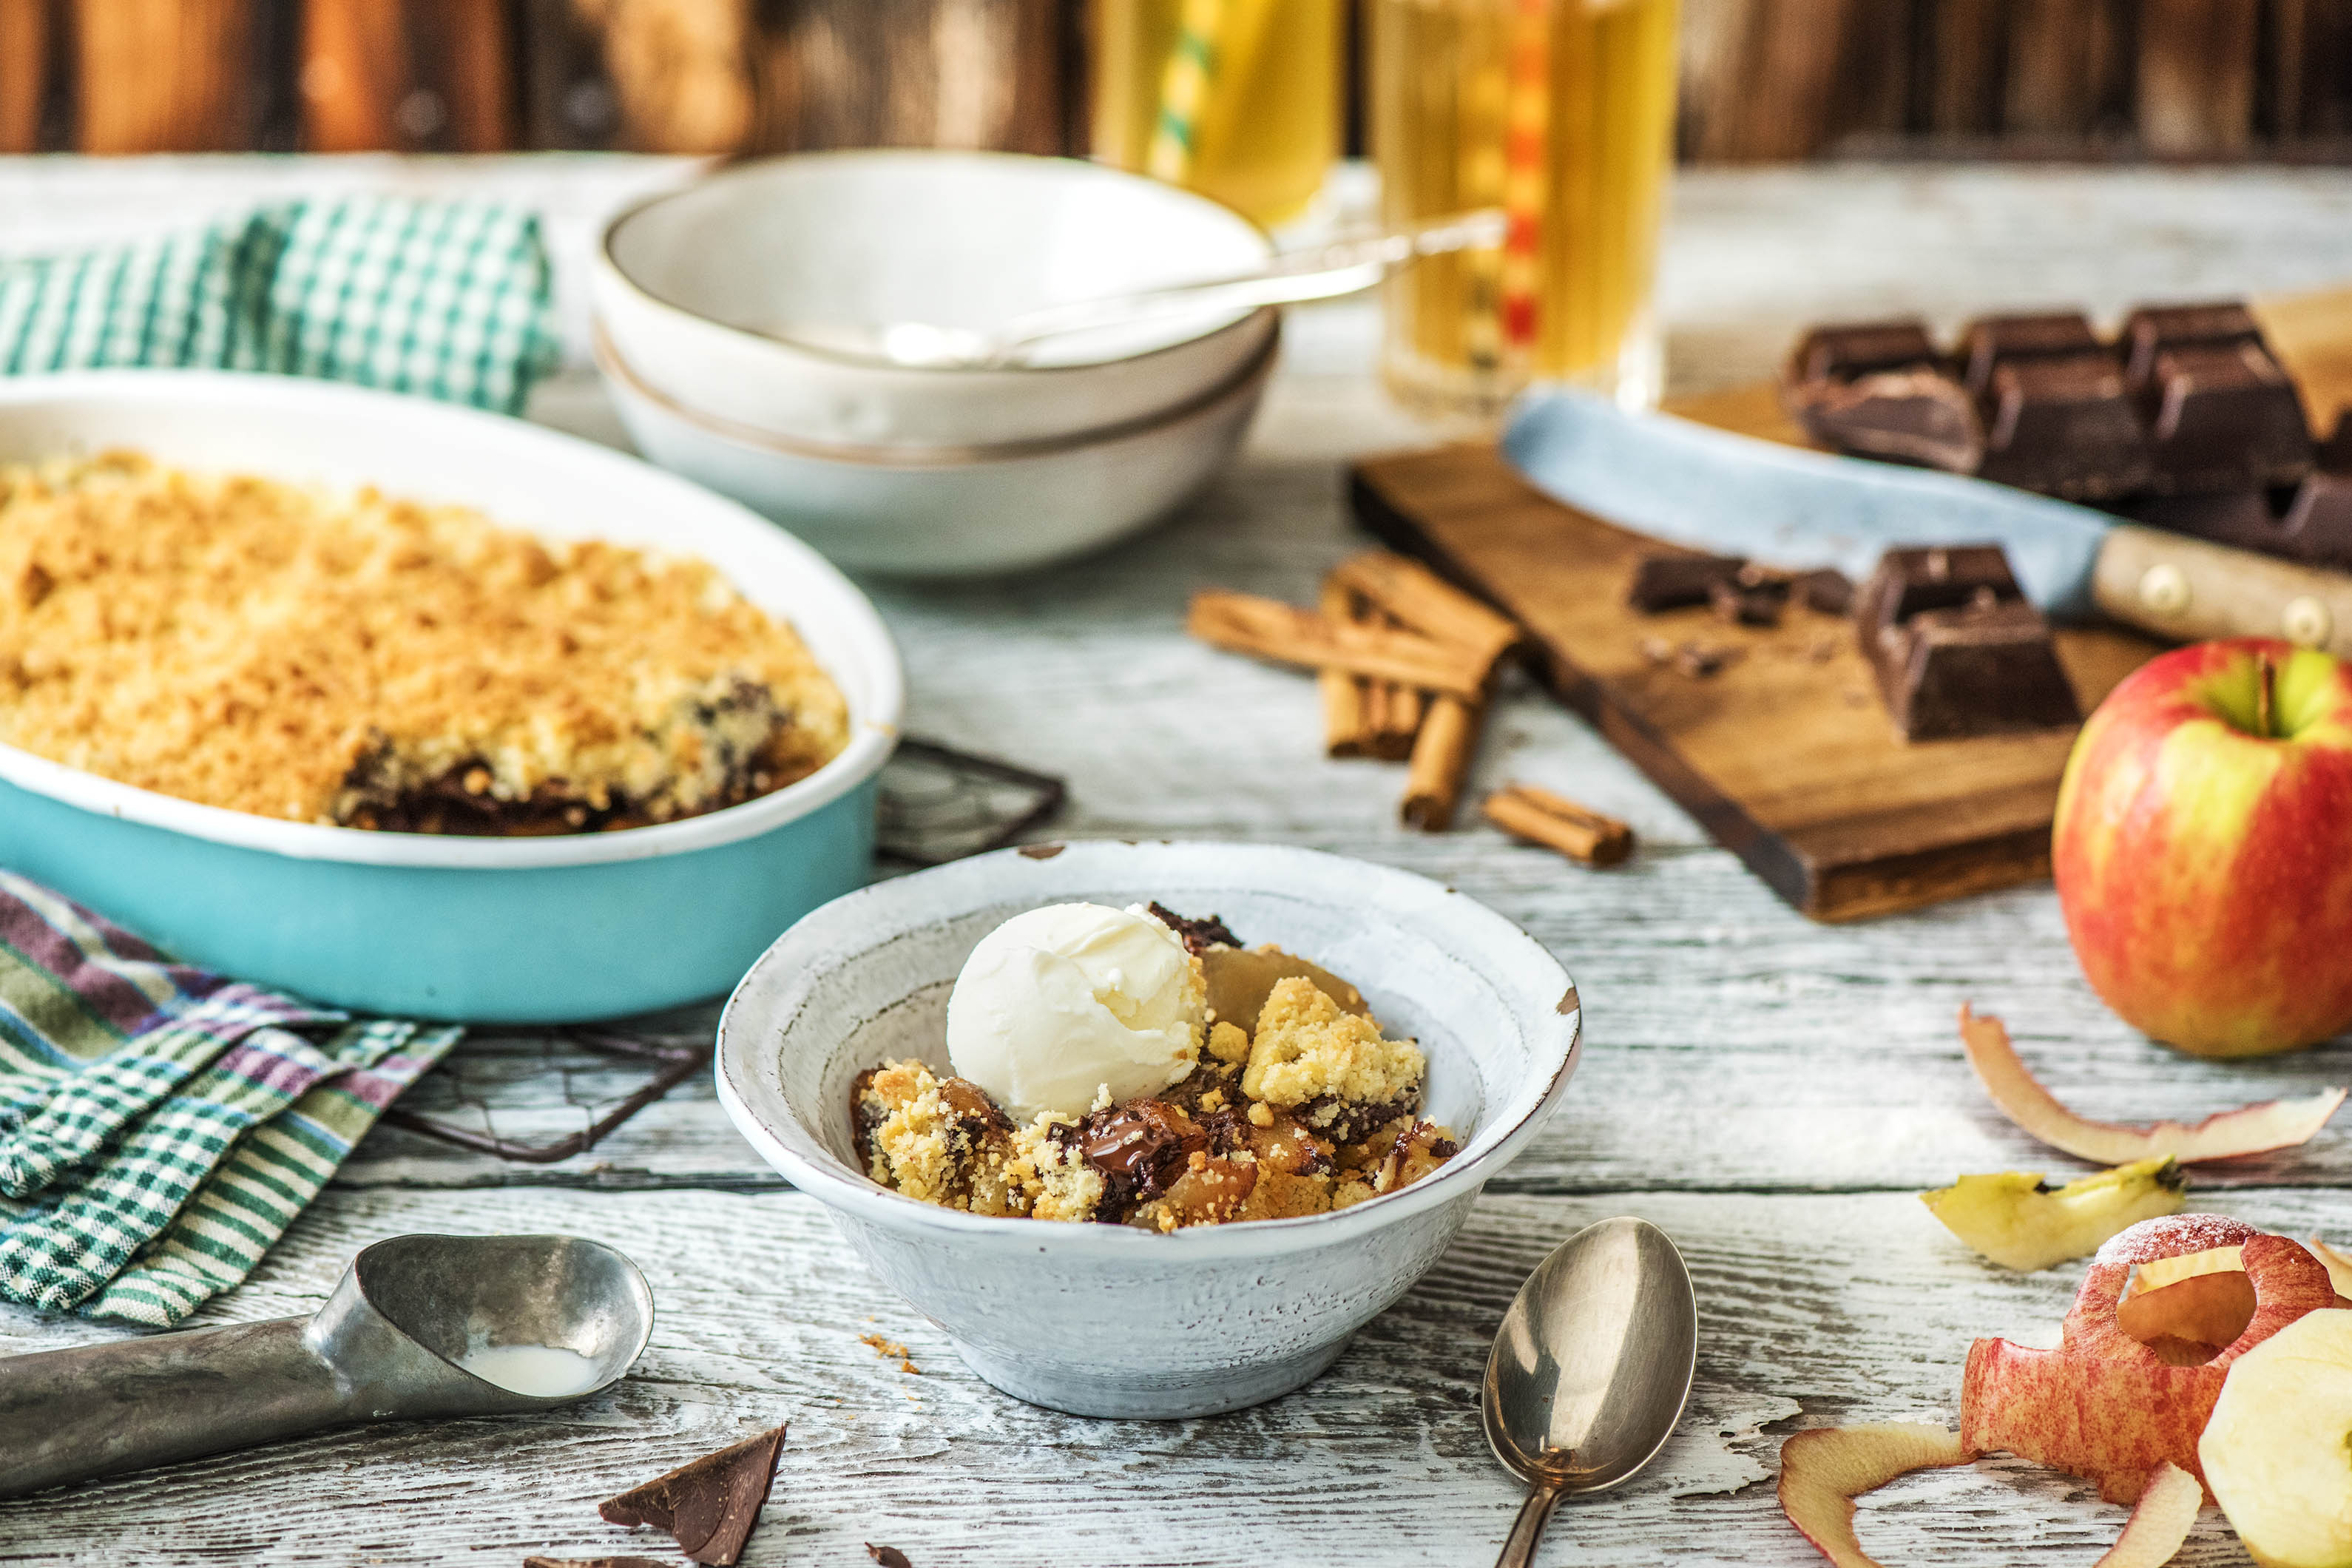 An Apple Crumble Recipe with an Indulgent Twist